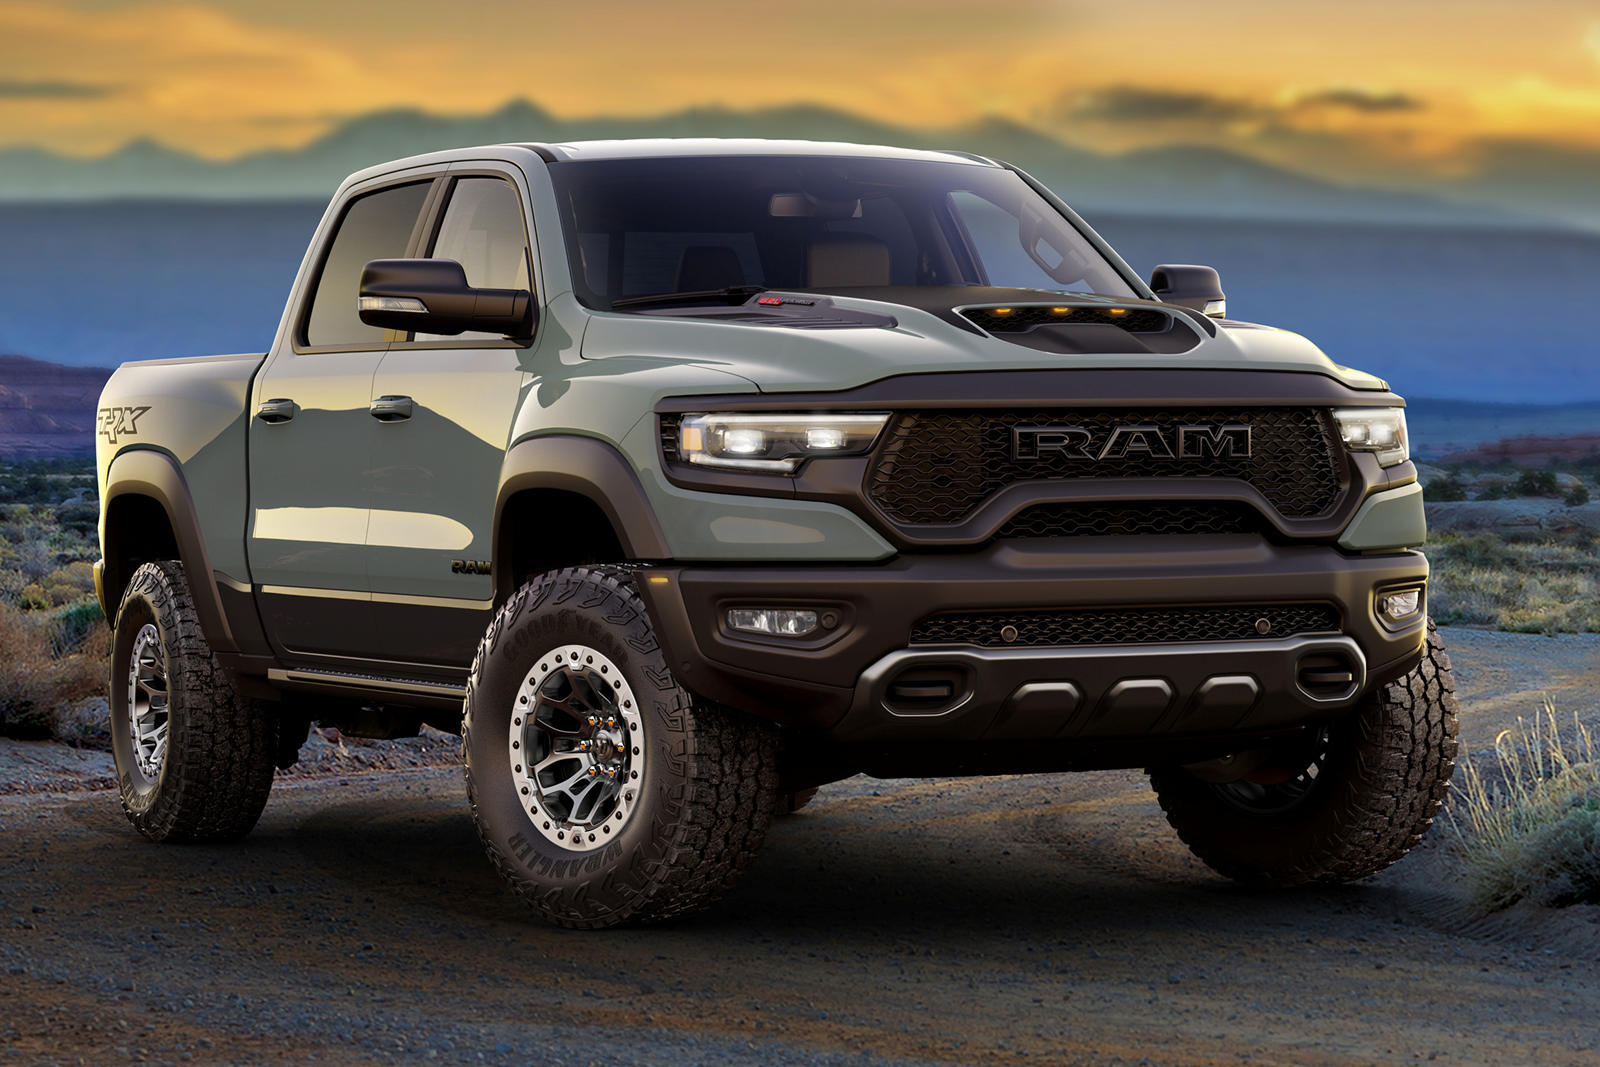 2021 Ram 1500 Trx Launch Edition Will Be A Very Rare Truck Carbuzz